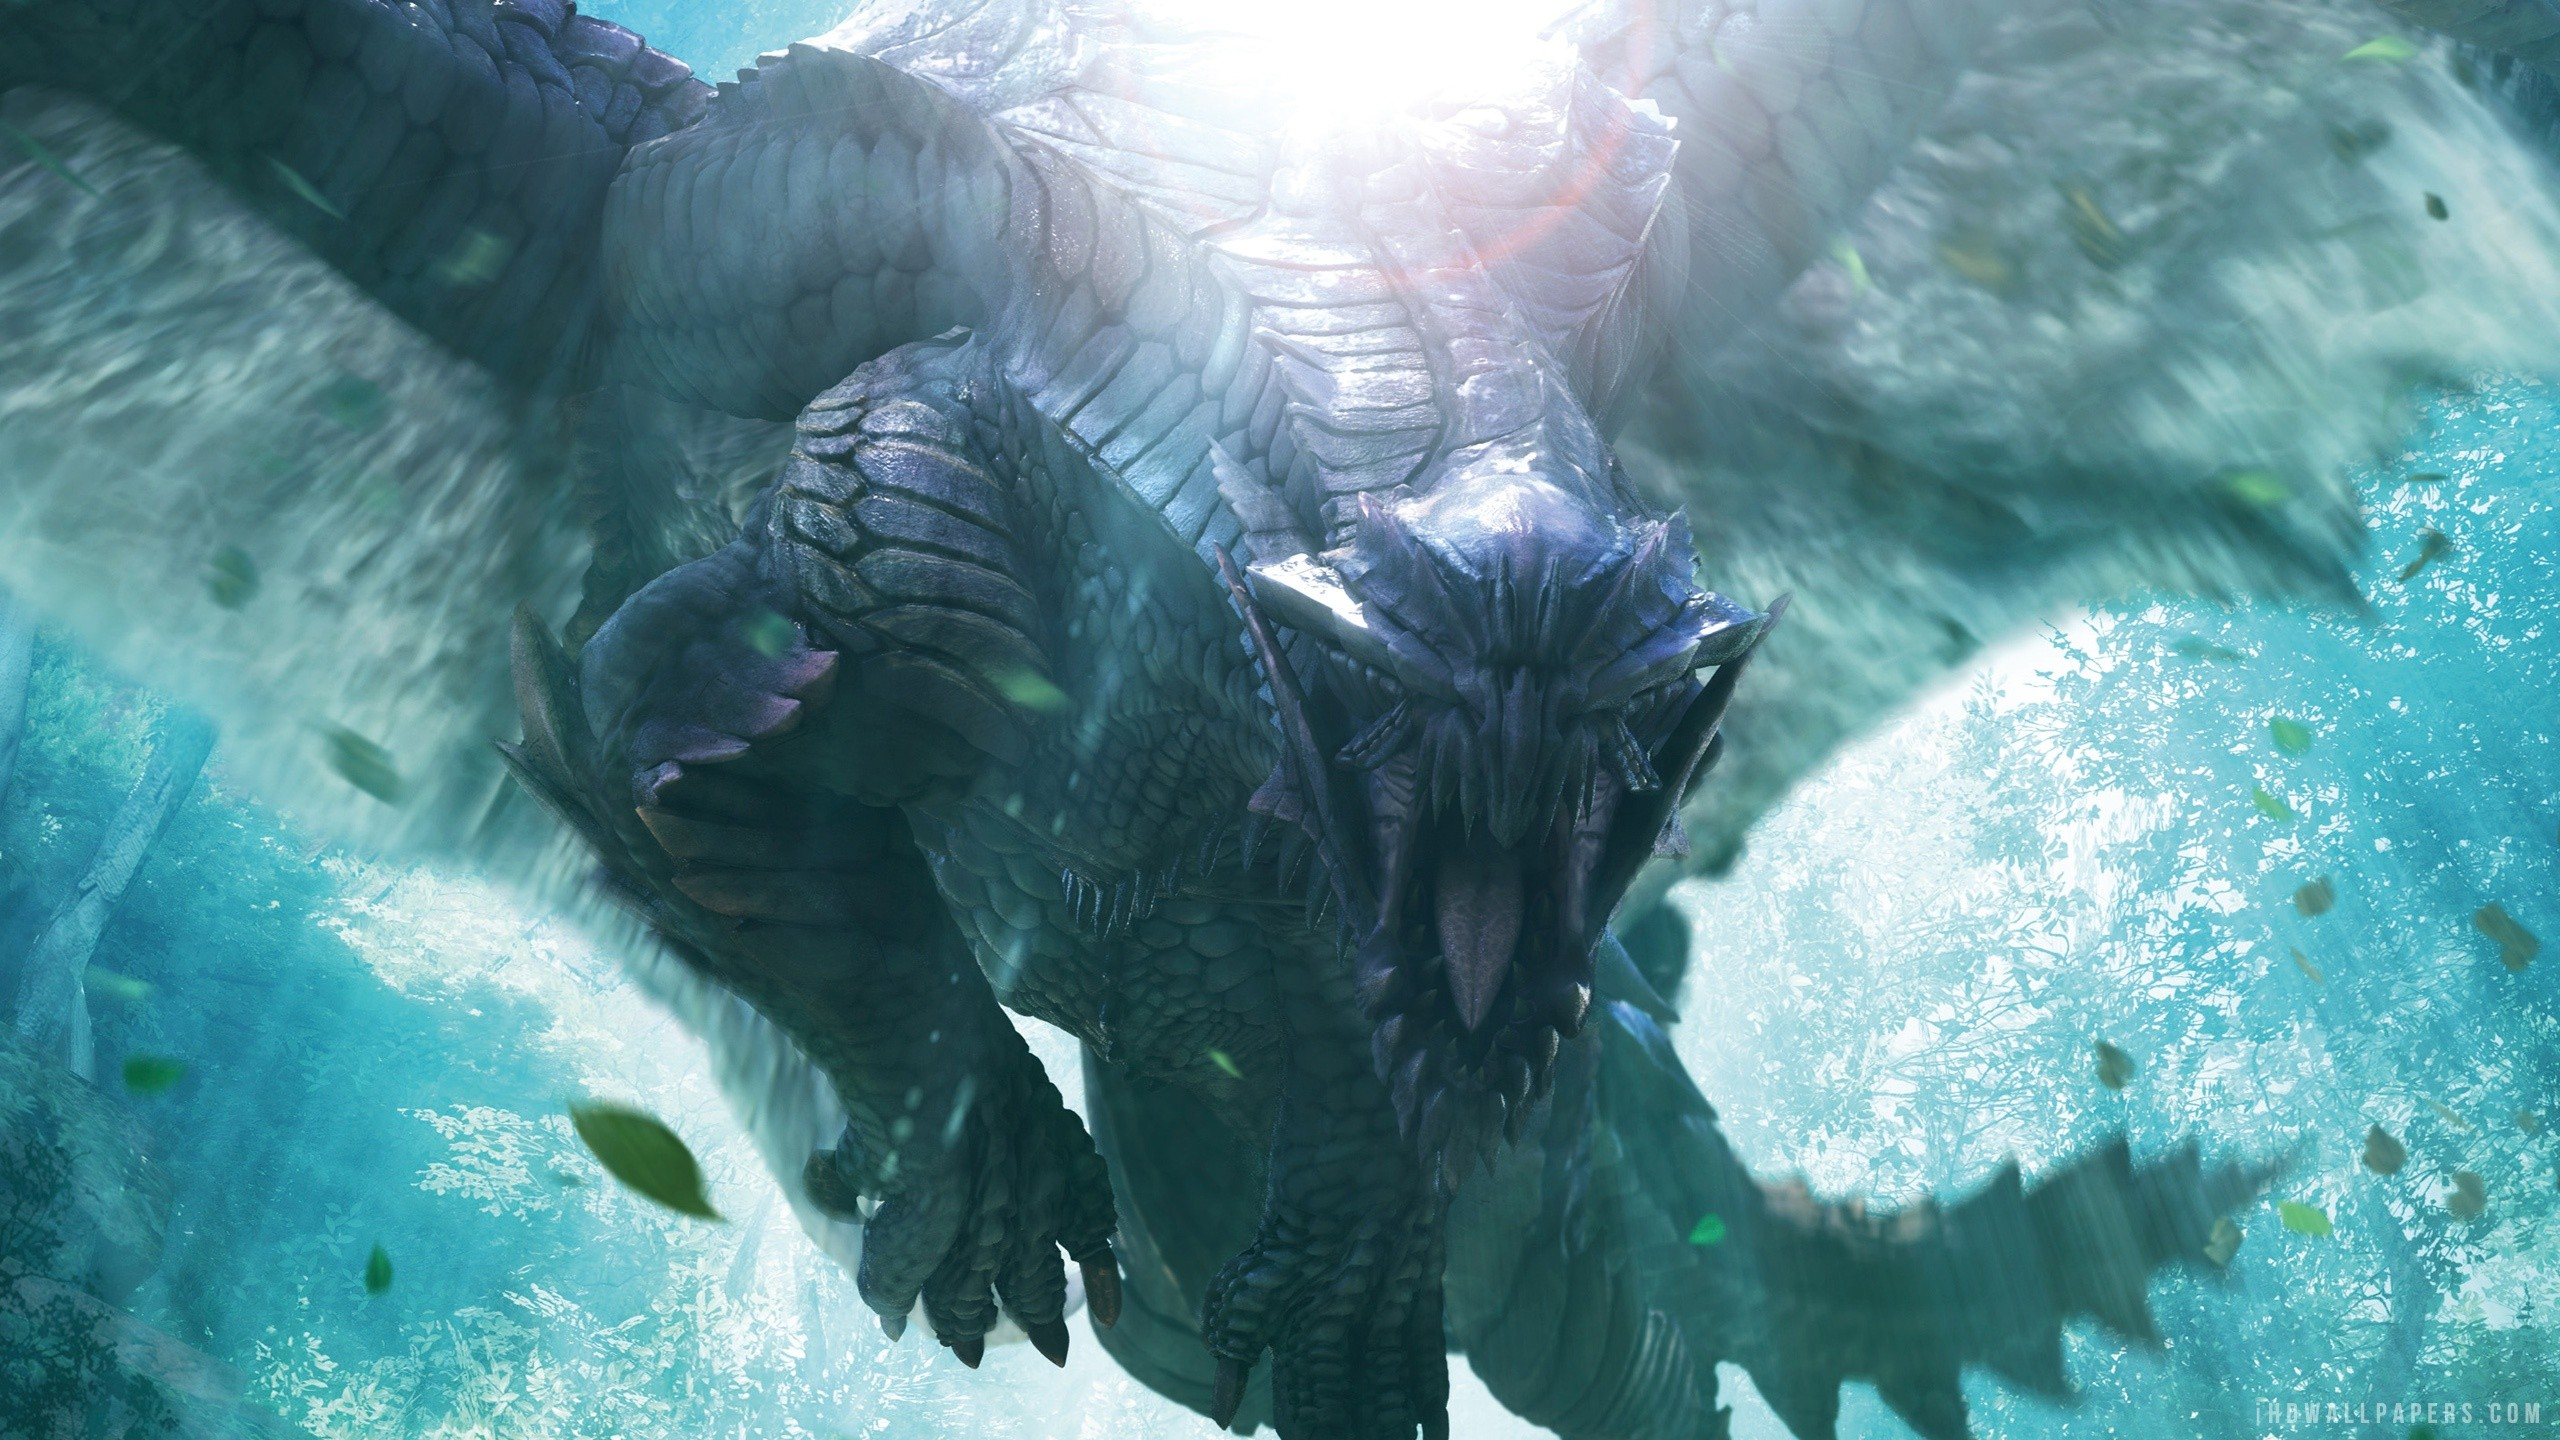 Monster Hunter Wallpaper Download Free Beautiful High Resolution